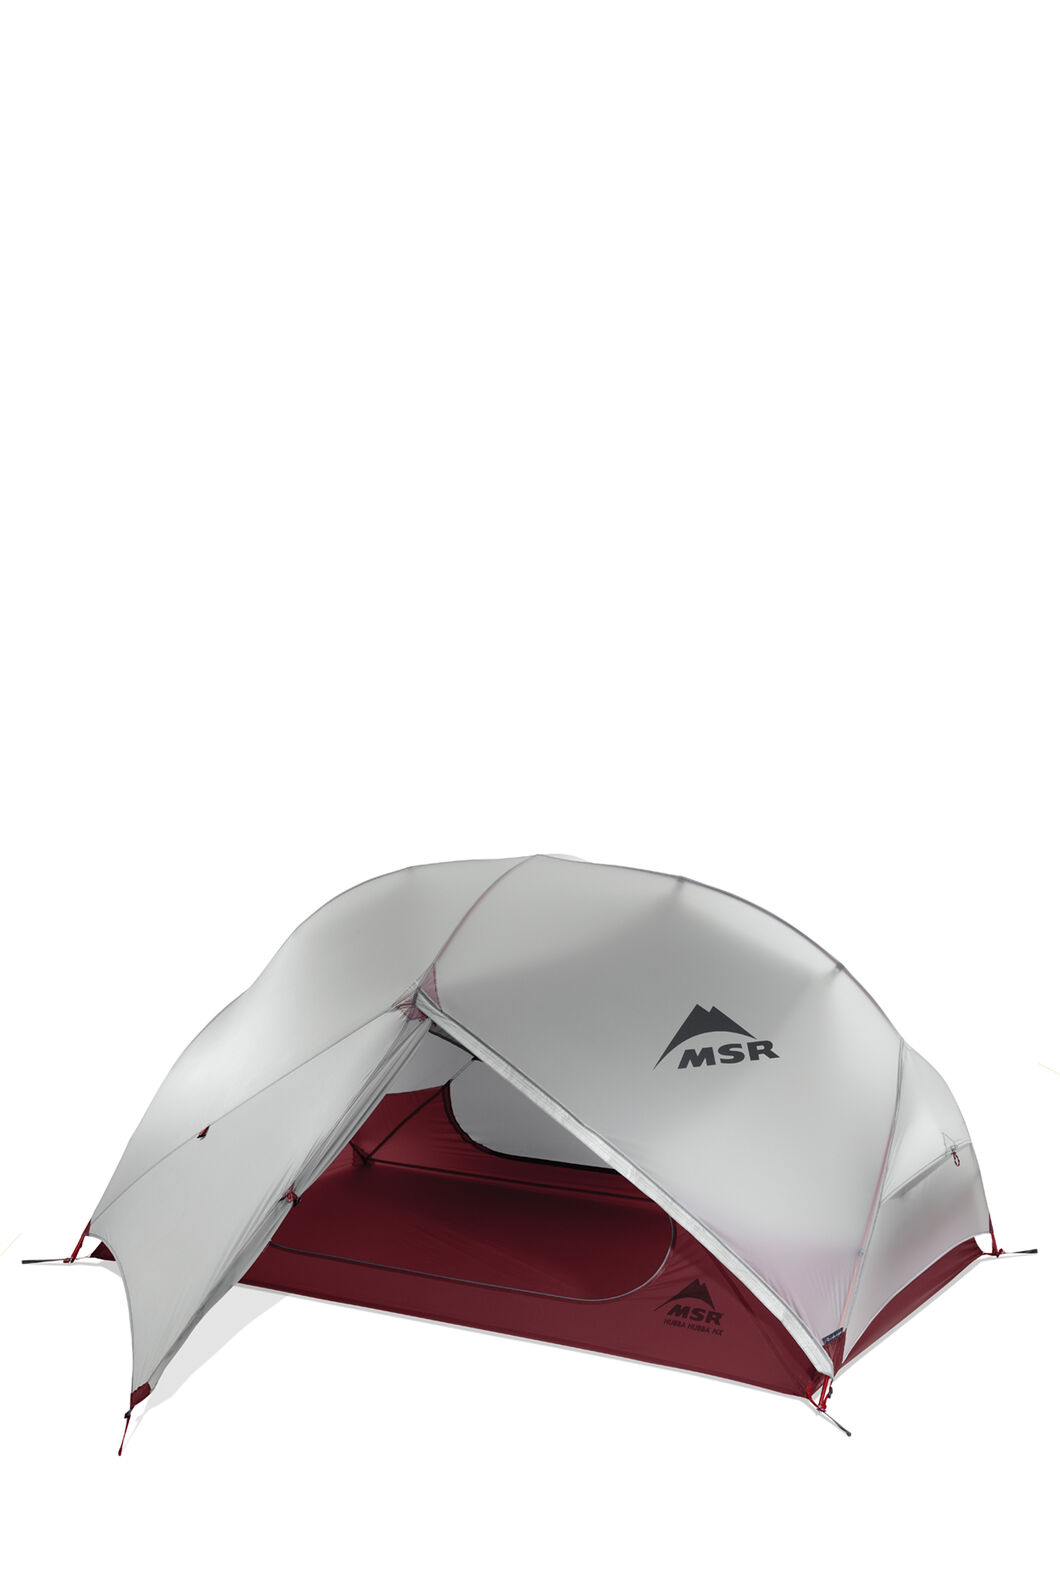 MSR Hubba Hubba NX 2 Person Backpacking Tent, Red/White, hi-res